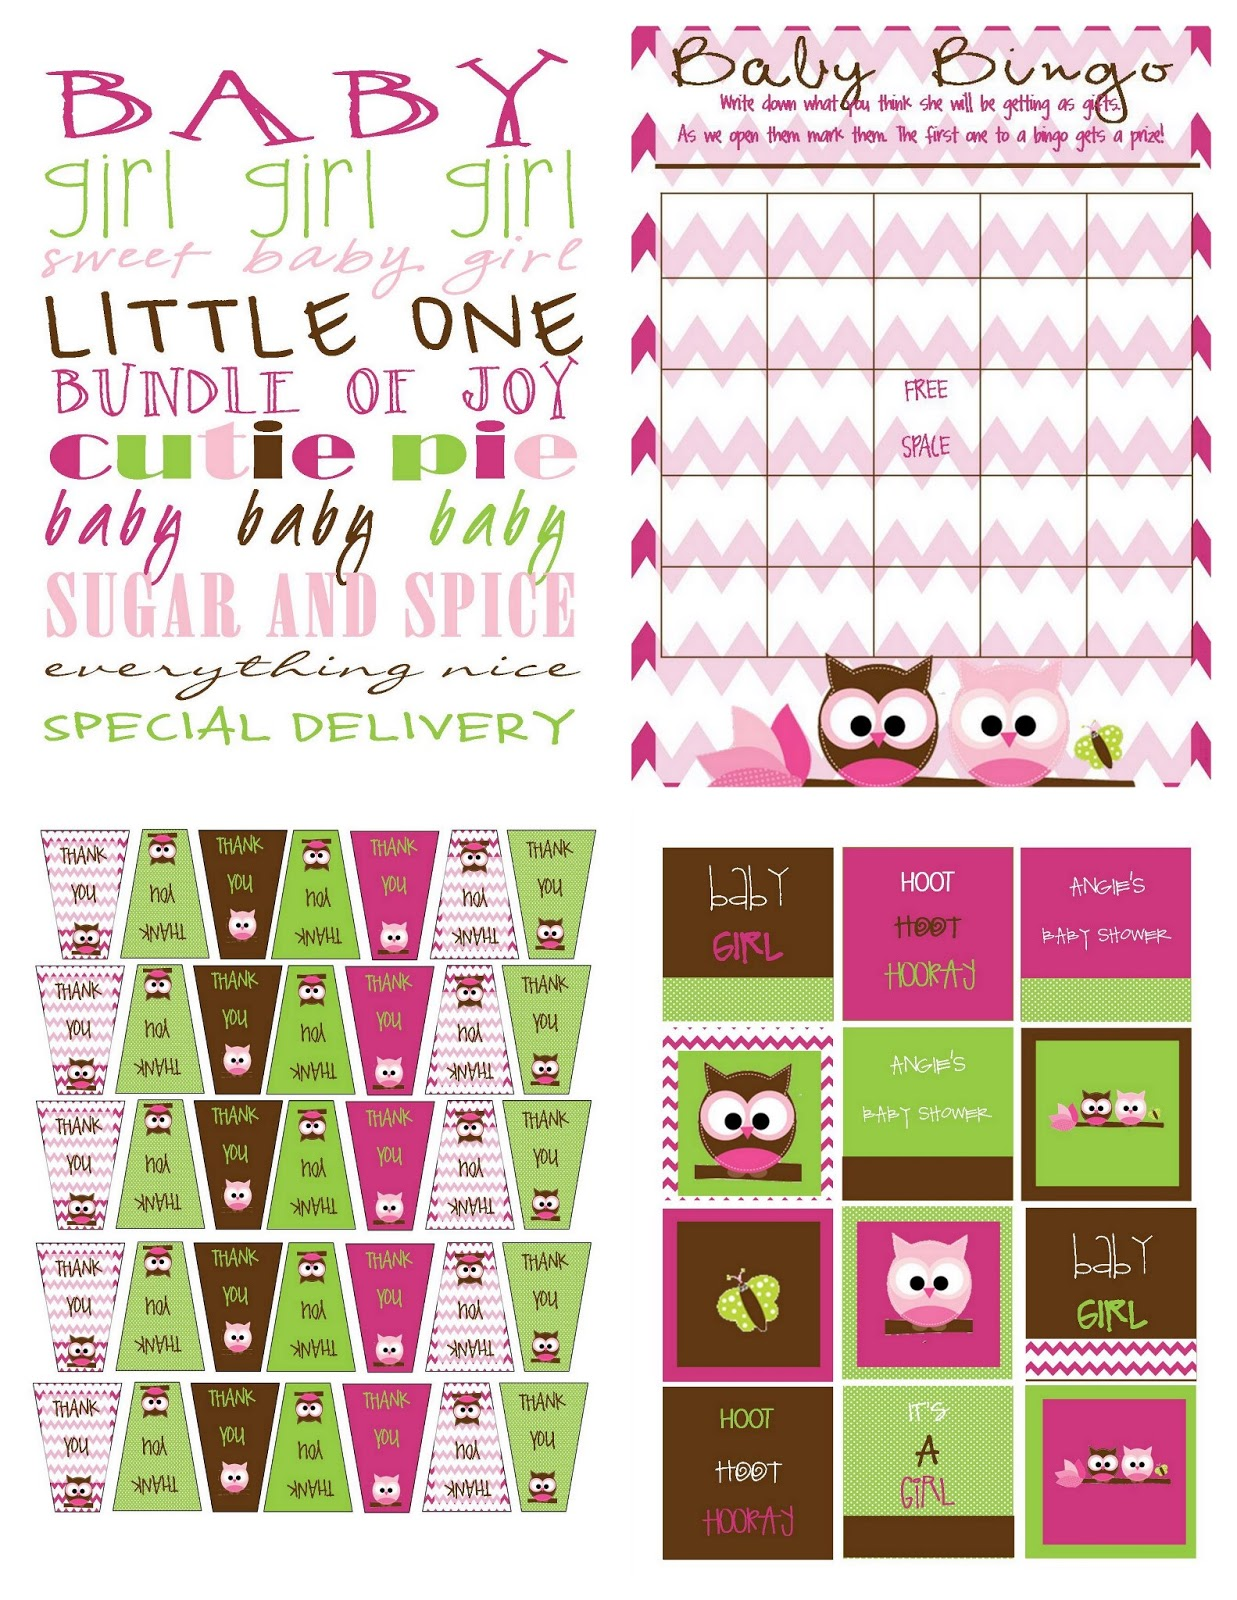 Recipes from stephanie owl shower invite stuff shower1g pronofoot35fo Images